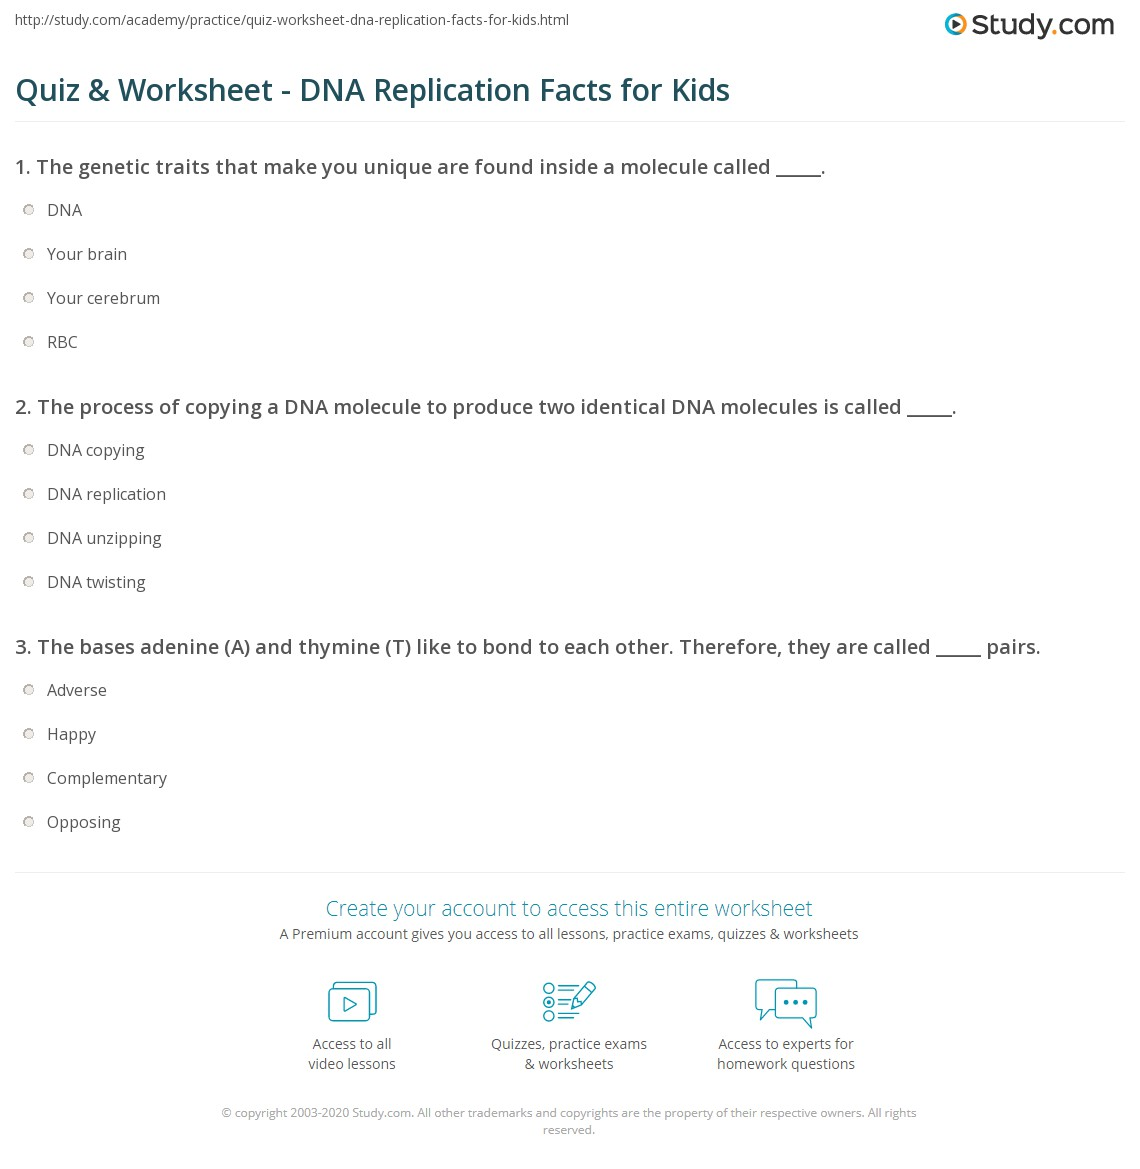 Printables Dna The Molecule Of Heredity Worksheet the molecule of heredity worksheet key versaldobip dna versaldobip